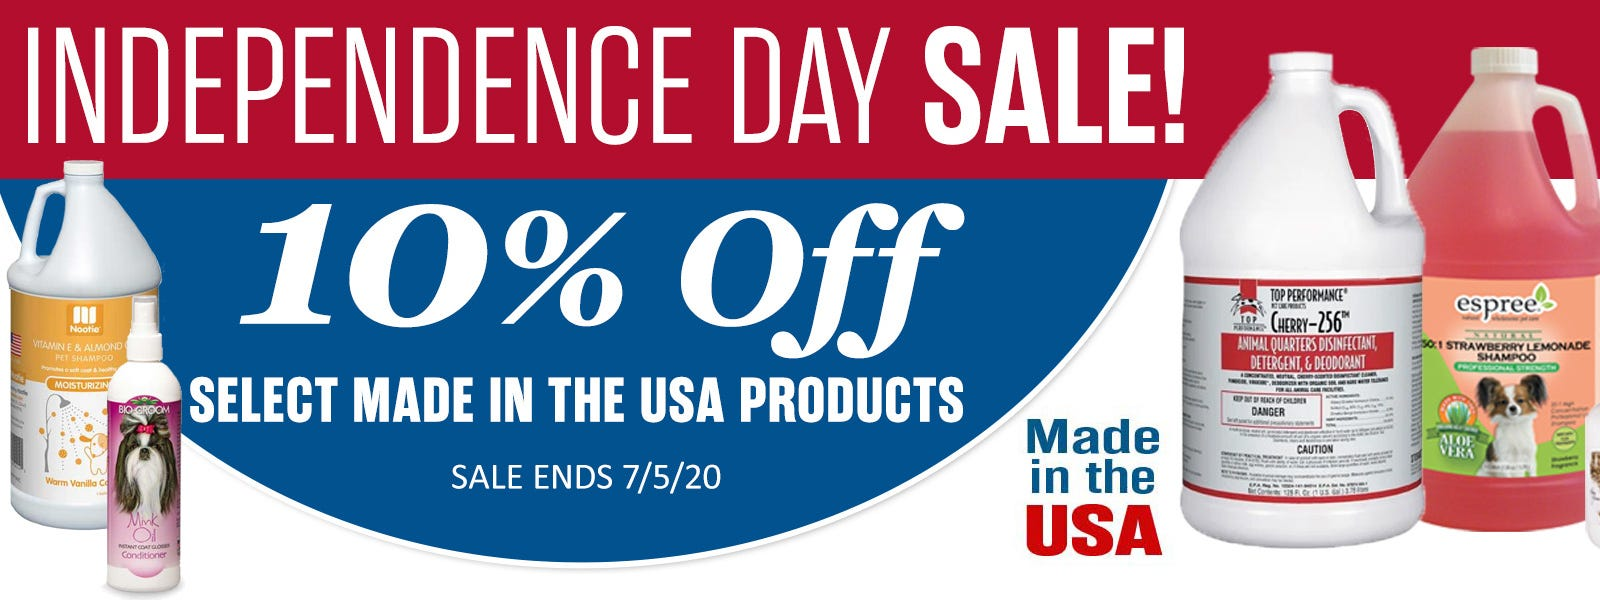 Independence Day Special! 10% of Select Made in USA Products